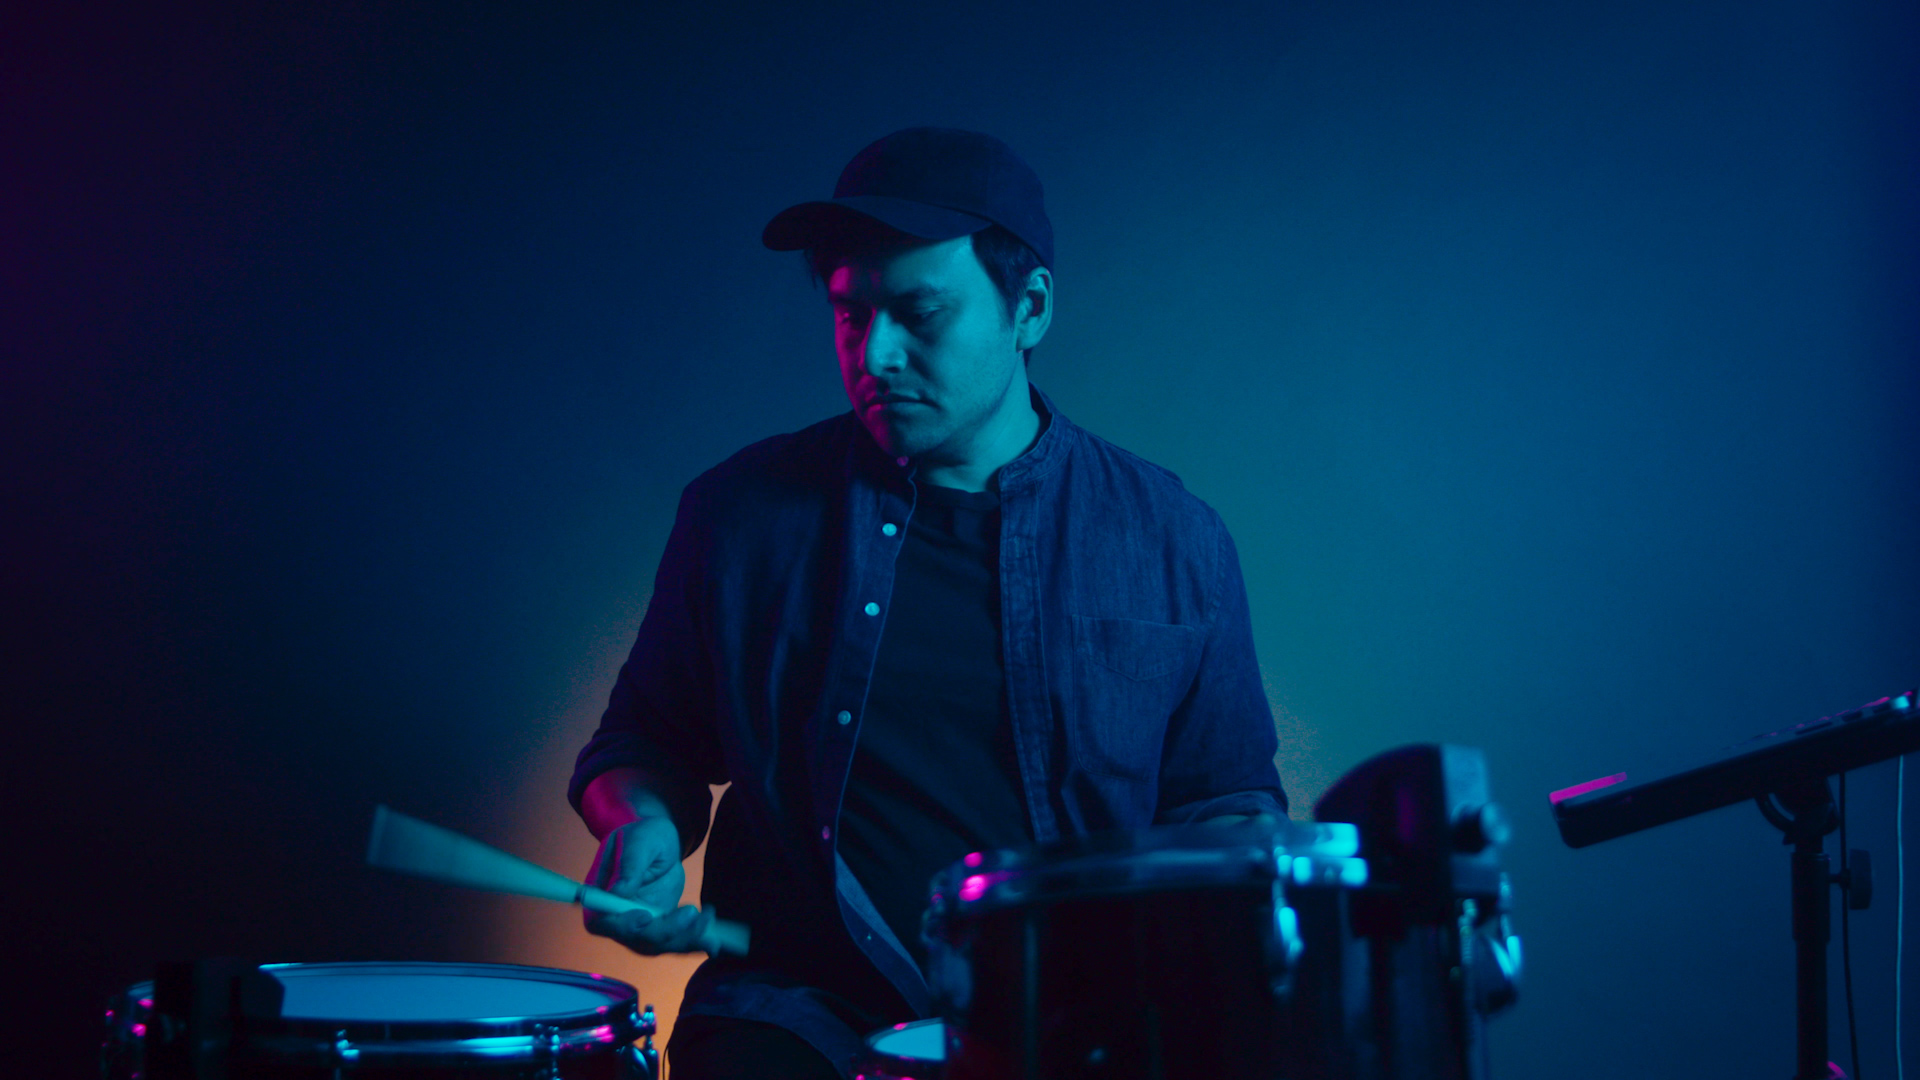 Meet the Chicano Tech Entrepreneur Creating the Next Generation of Drumming Software